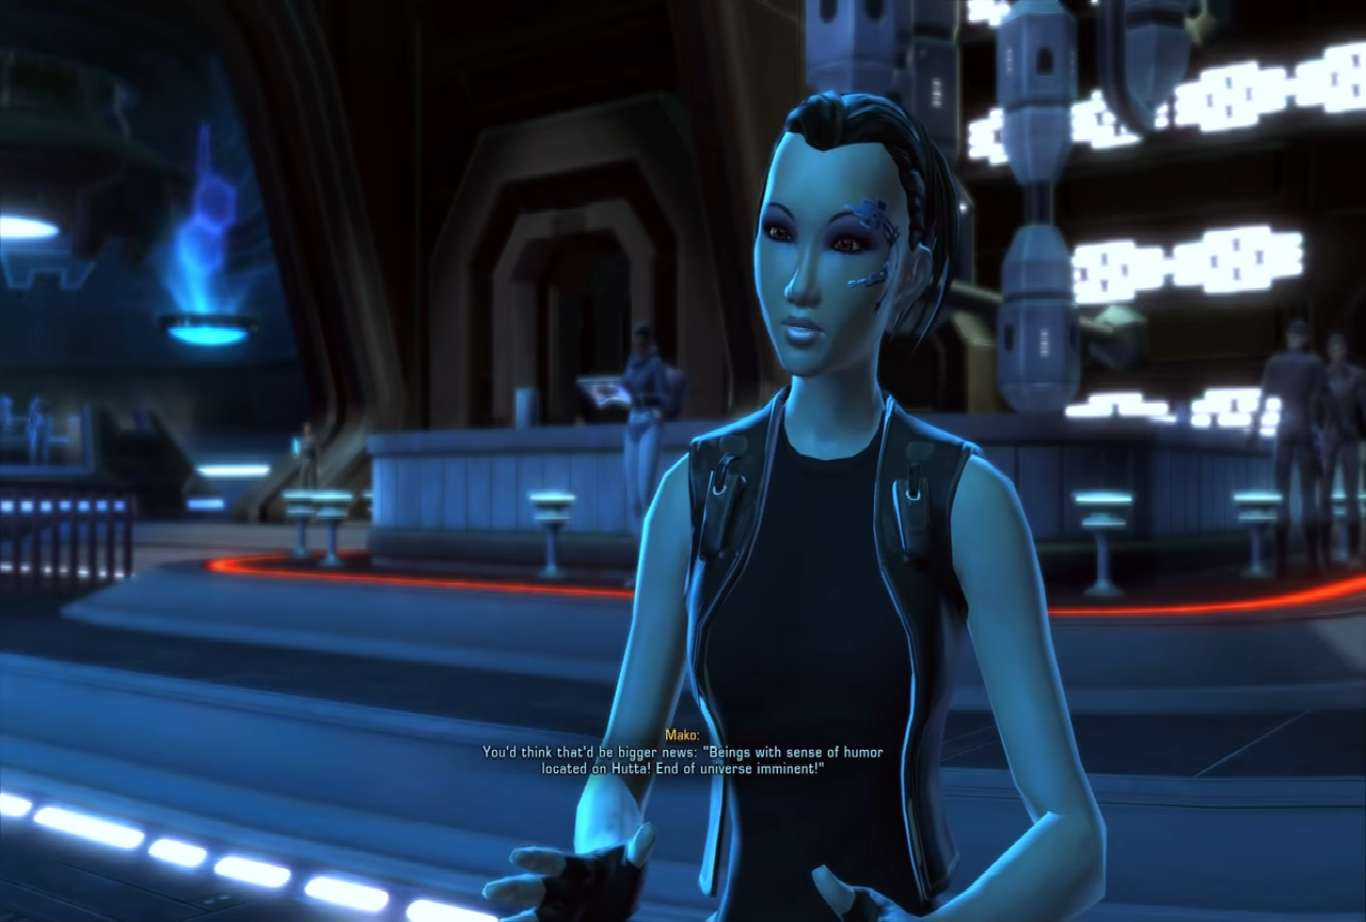 Star Wars The Old Republic 6.0.1a A Short List Of Much-Needed Updates To The Game